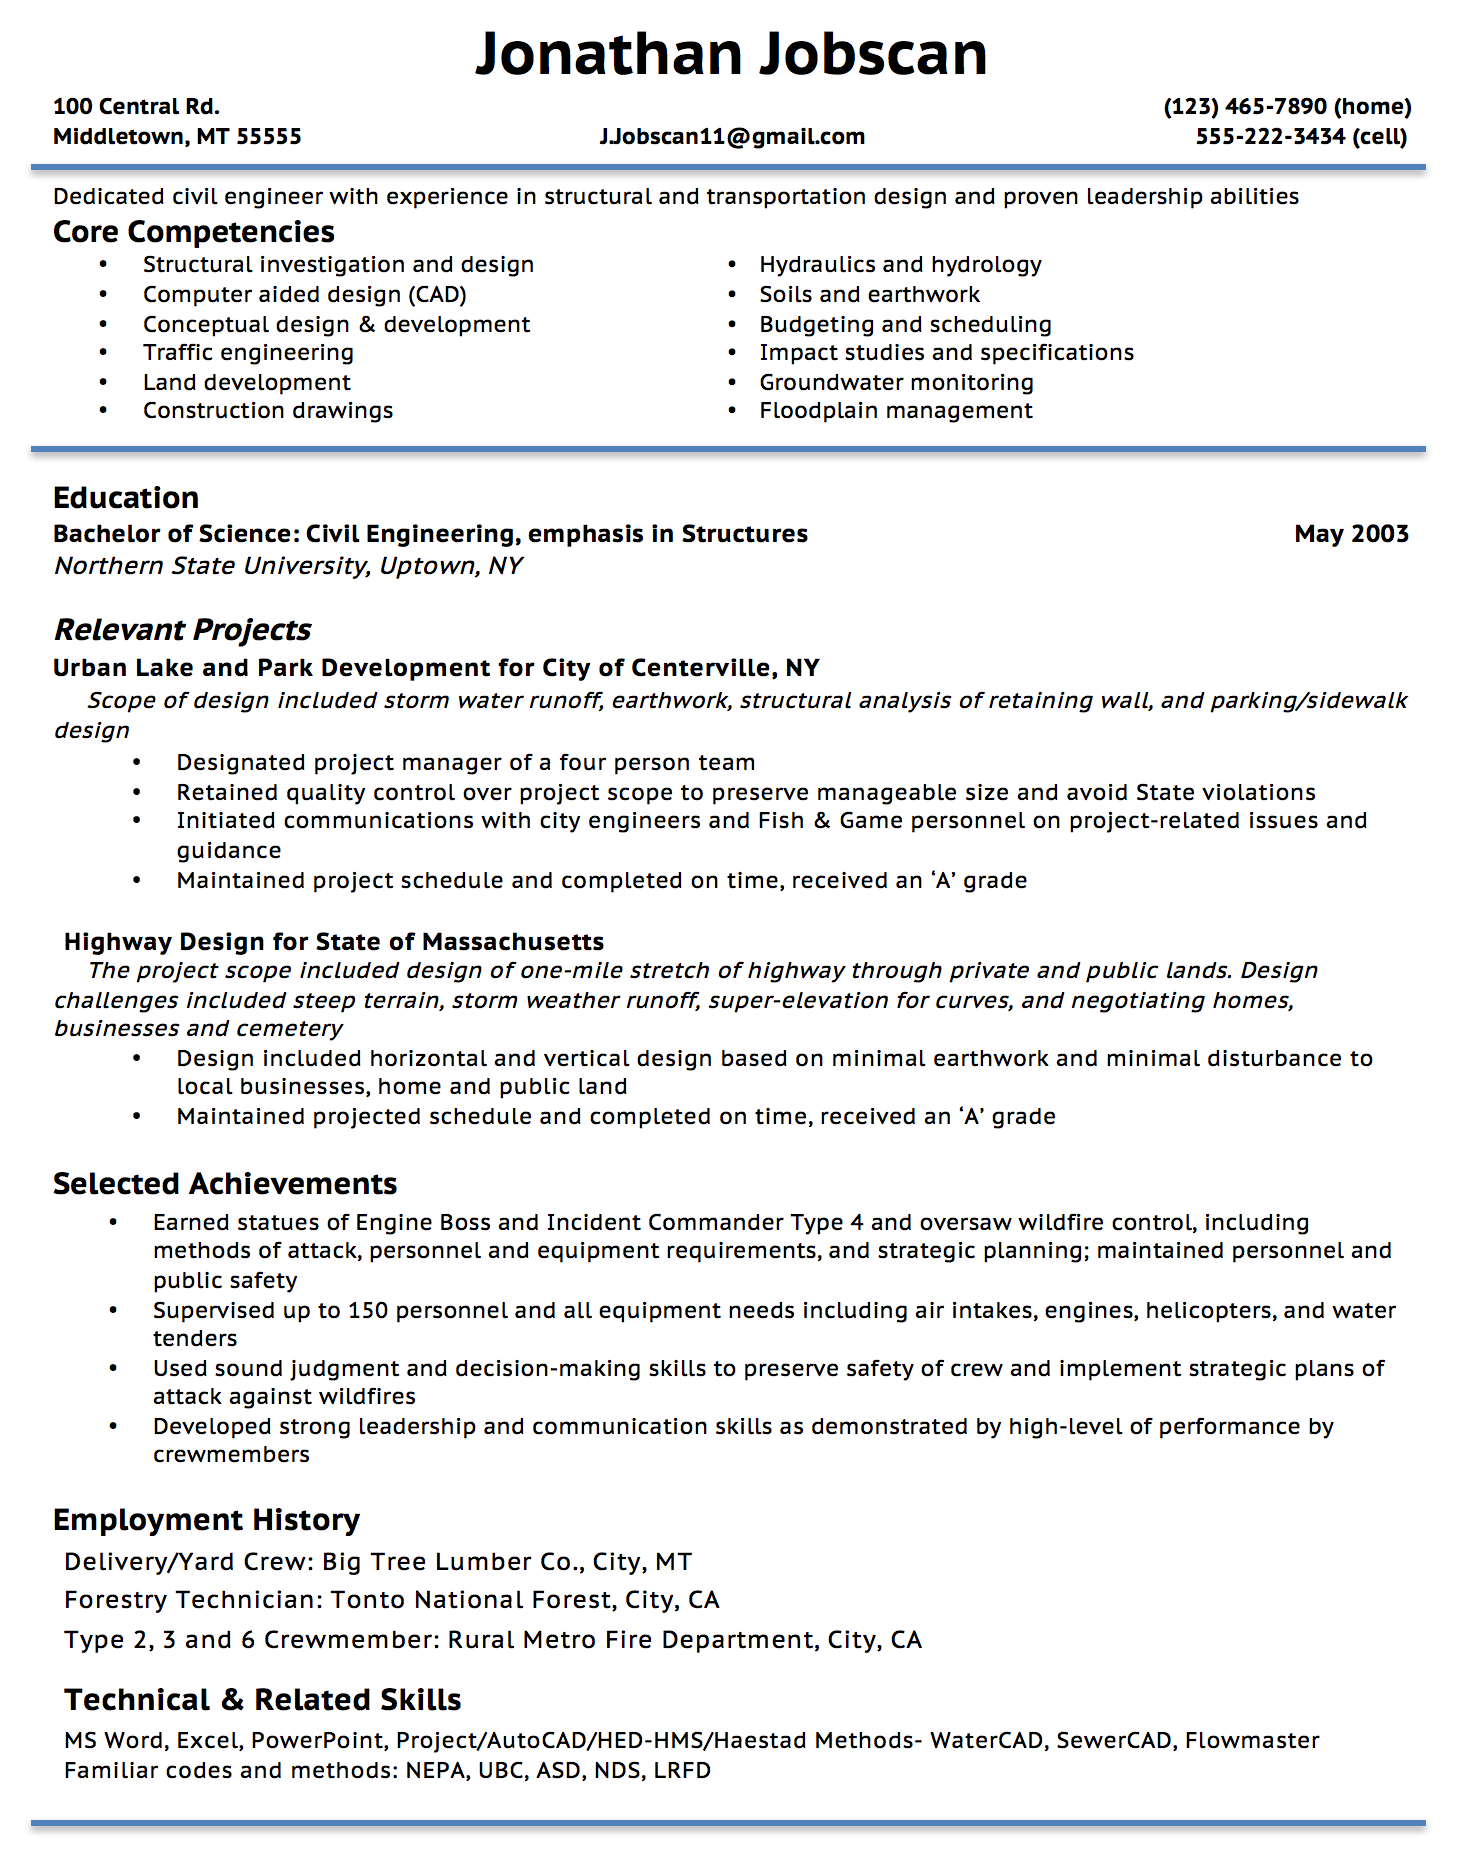 Opposenewapstandardsus  Pleasant Resume Writing Guide  Jobscan With Lovable Example Of A Functional Resume Format With Beauteous Resume En Espanol Also Entry Level Electrical Engineering Resume In Addition Resume For Computer Science And Warehouse Resume Objectives As Well As Resume Buildr Additionally Dance Resume Example From Jobscanco With Opposenewapstandardsus  Lovable Resume Writing Guide  Jobscan With Beauteous Example Of A Functional Resume Format And Pleasant Resume En Espanol Also Entry Level Electrical Engineering Resume In Addition Resume For Computer Science From Jobscanco